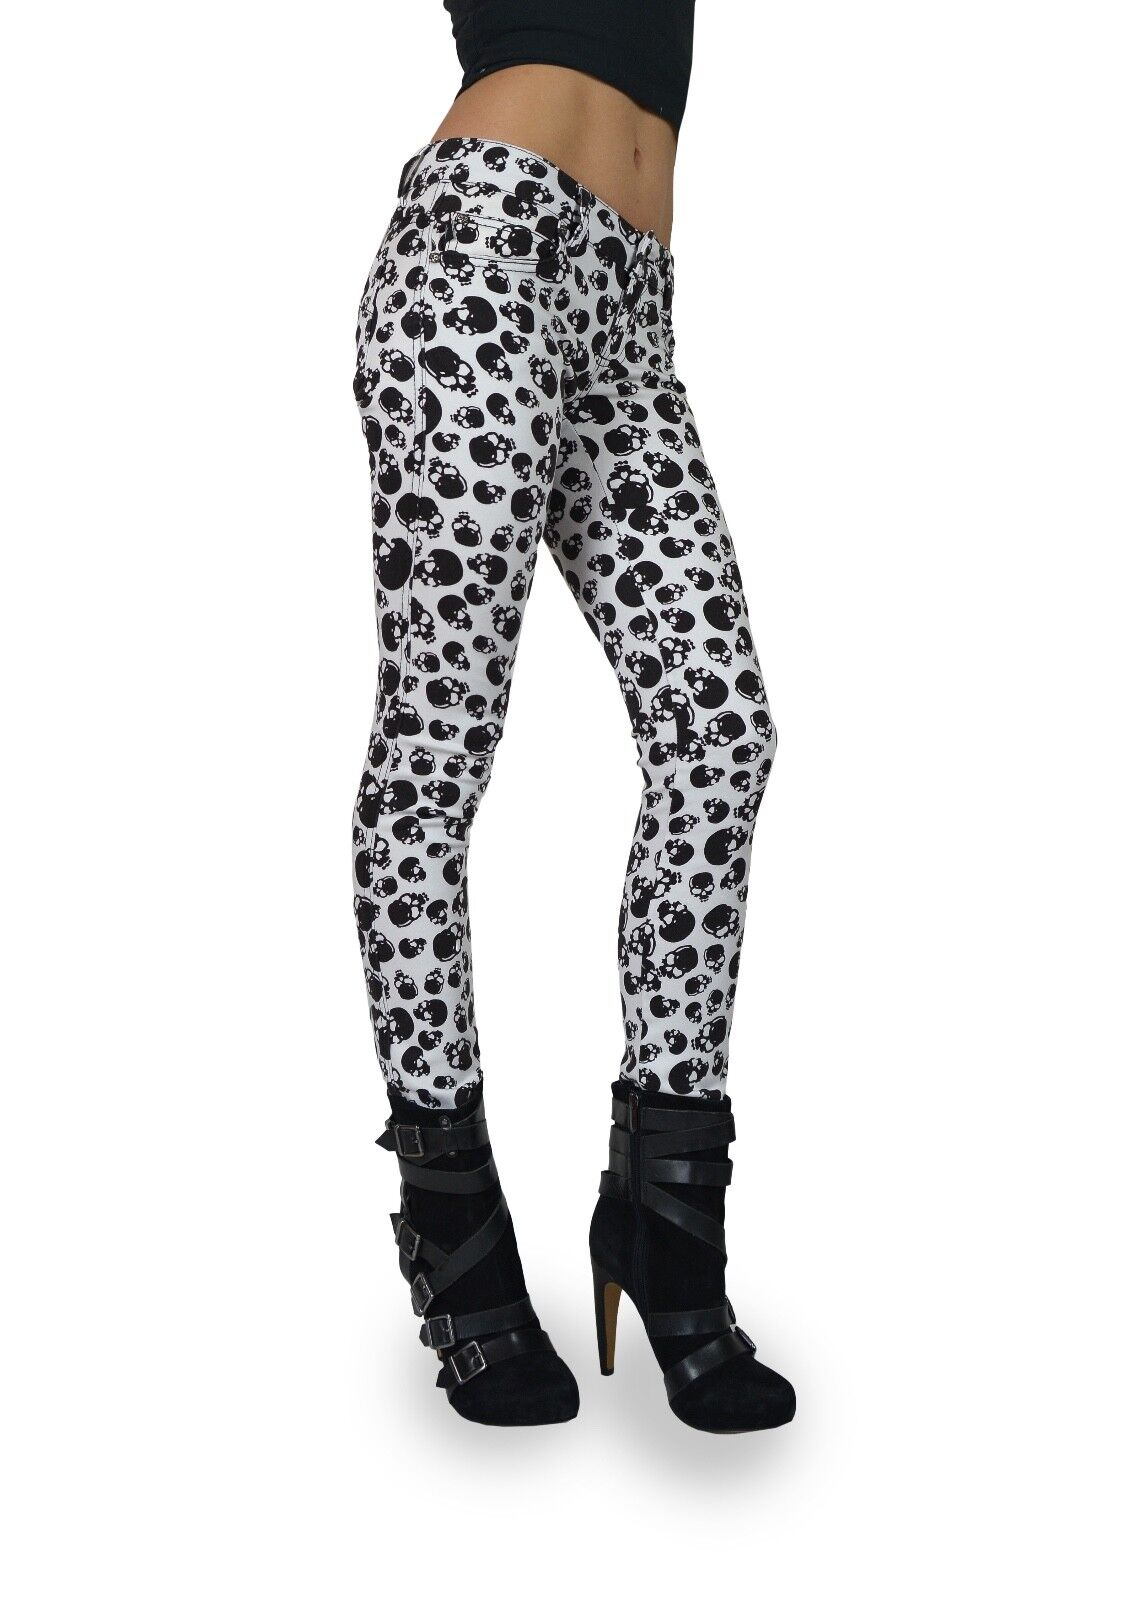 TRIPP EMO GOTH PUNK ROCK STAR WHITE PARTY SKULL T- JEANS PANTS SKINNY IS6235P Clothing, Shoes & Accessories